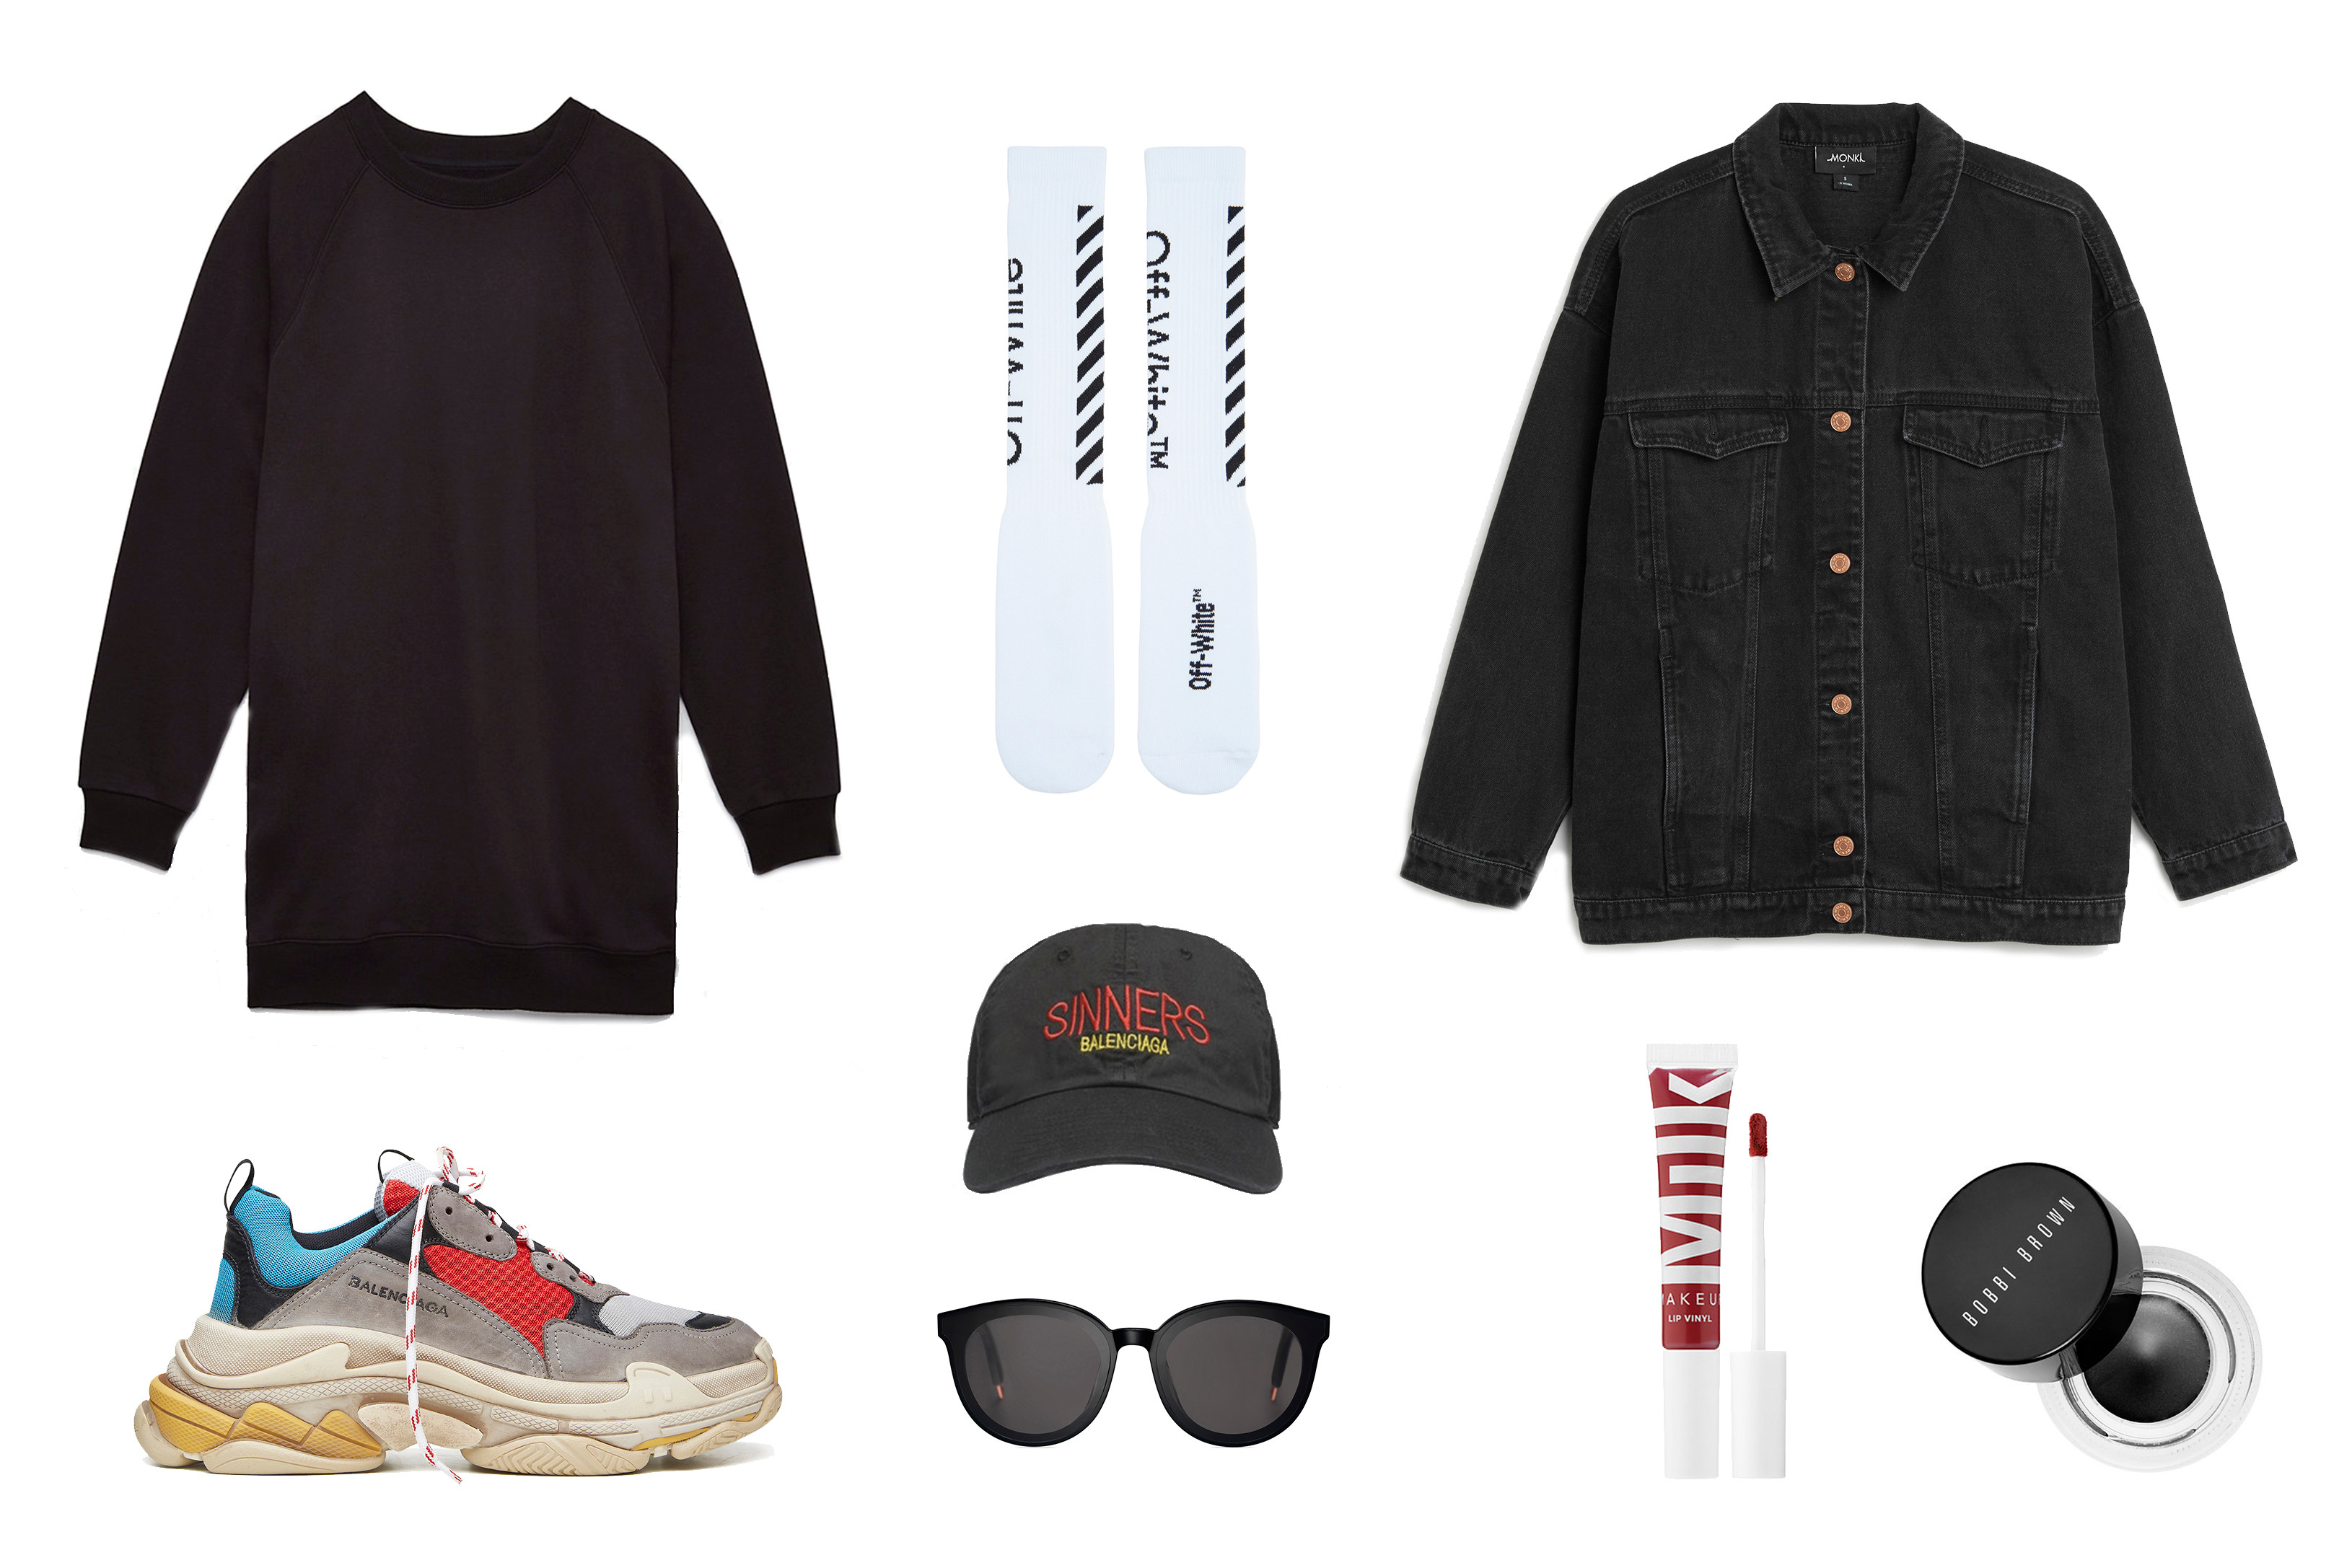 Balenciaga Triple,S Sneaker Runner Shoe Outfit Ideas Silhouette Popular  Hype Fashion Inspiration